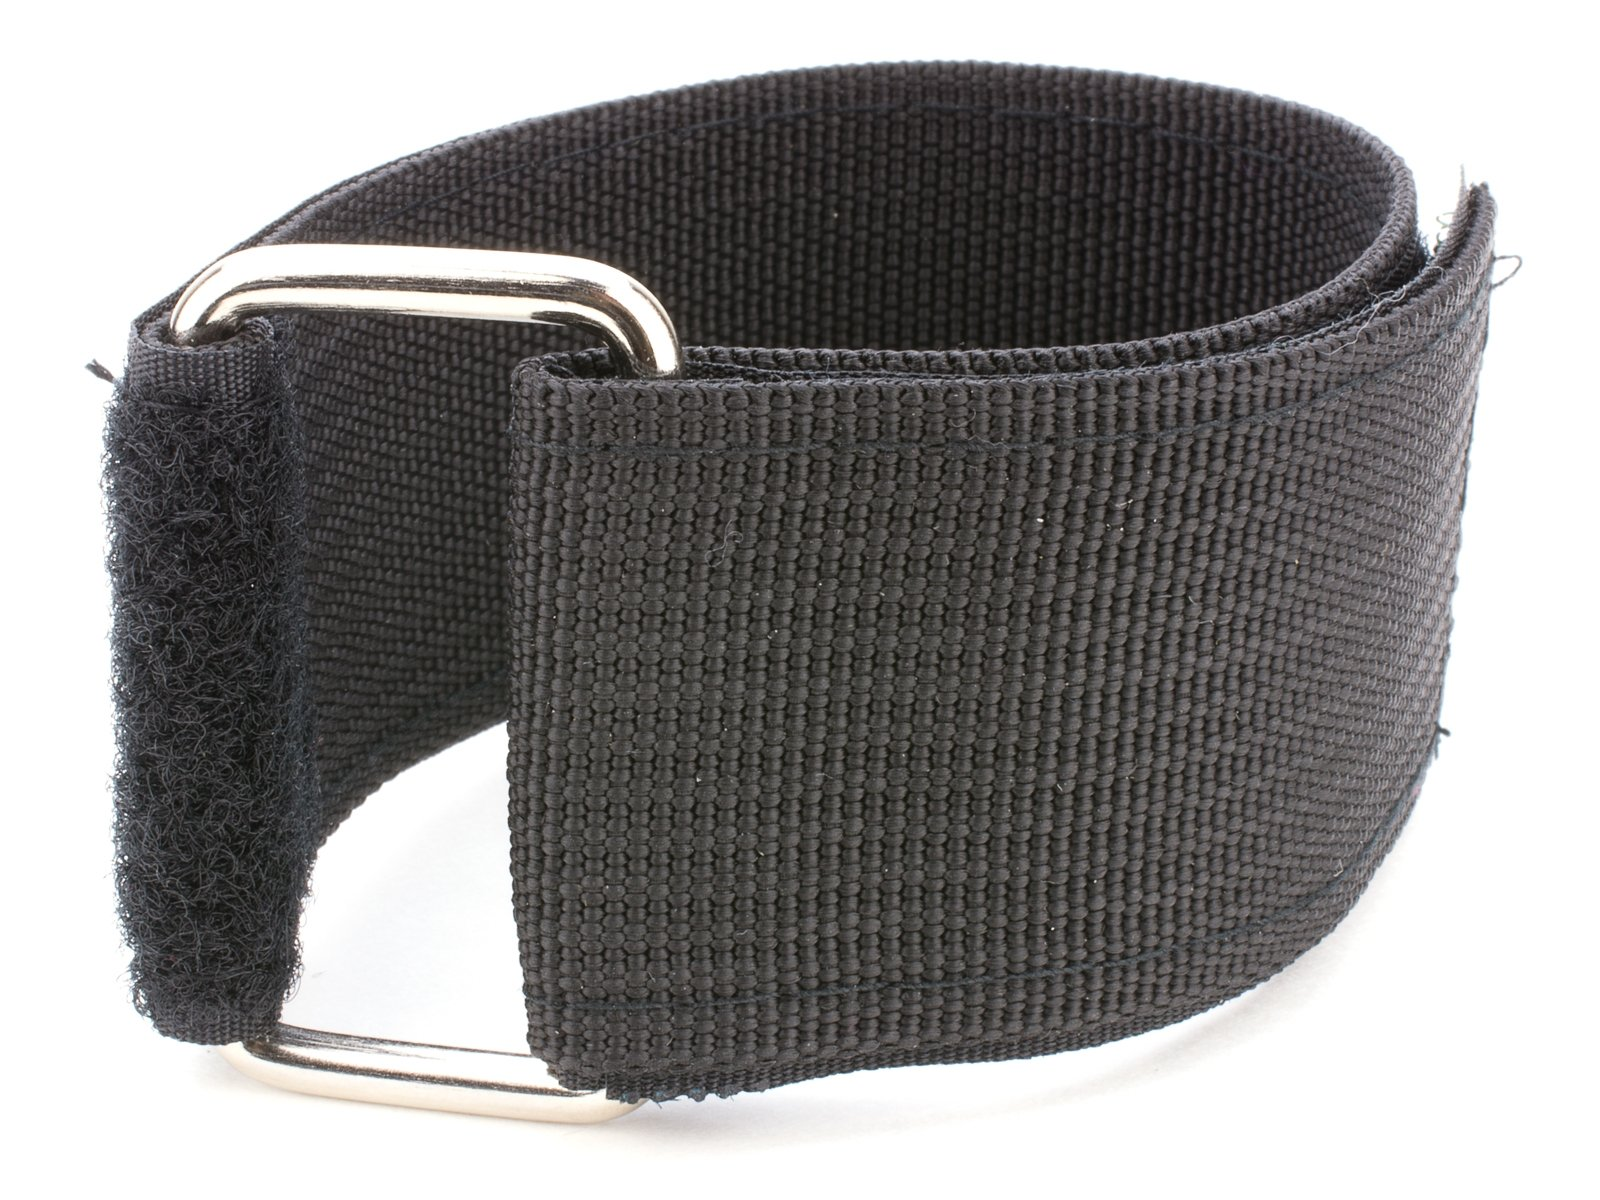 18 x 2 Inch Heavy Duty Black Cinch Strap - 5 Pack by SecureTM Cable Ties